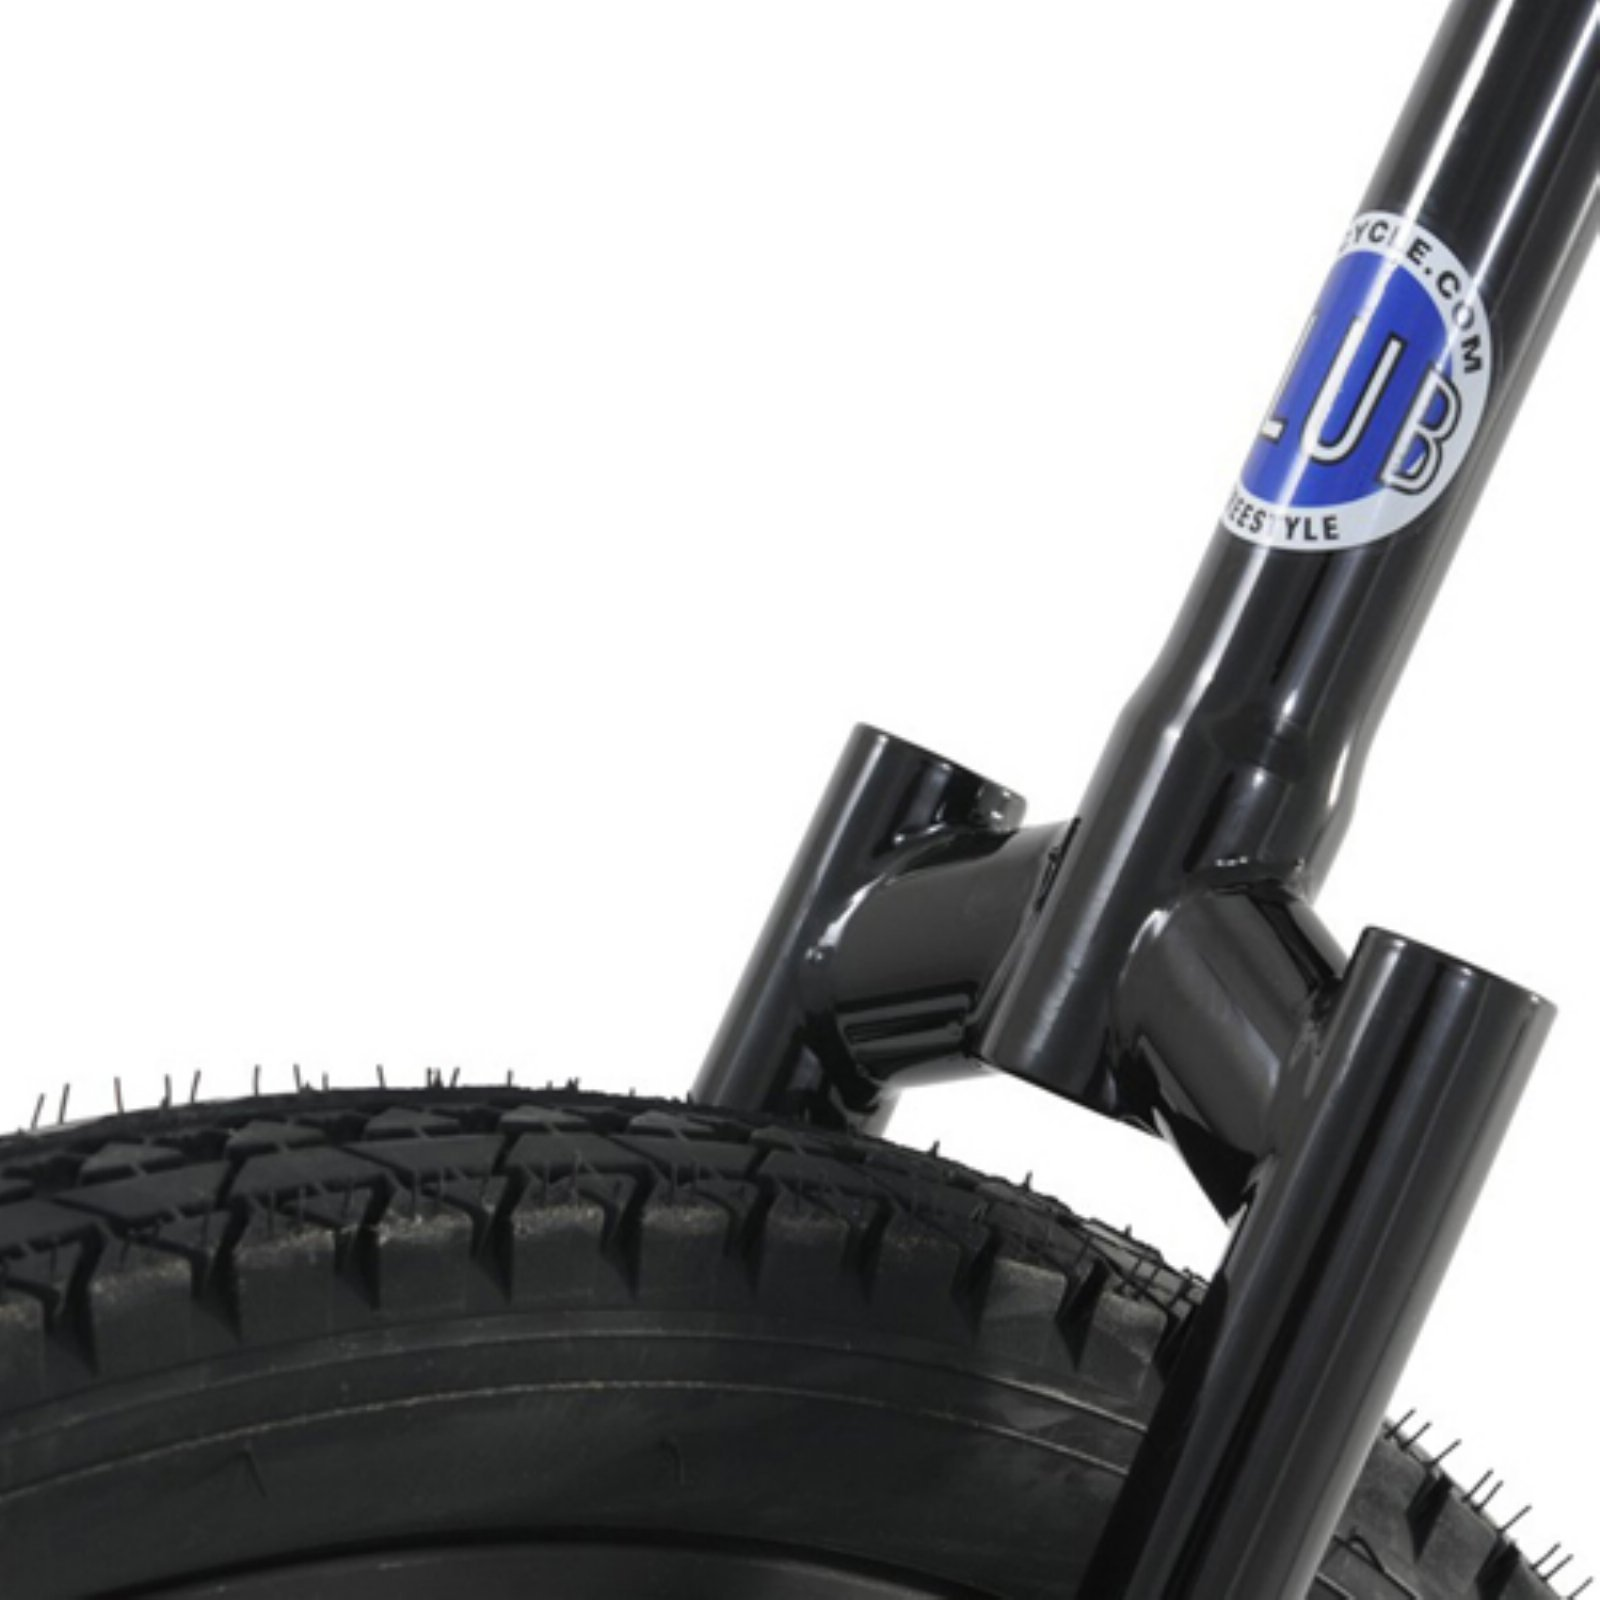 Club 26'' Road Unicycle - Black by Unicycle.com (Image #2)